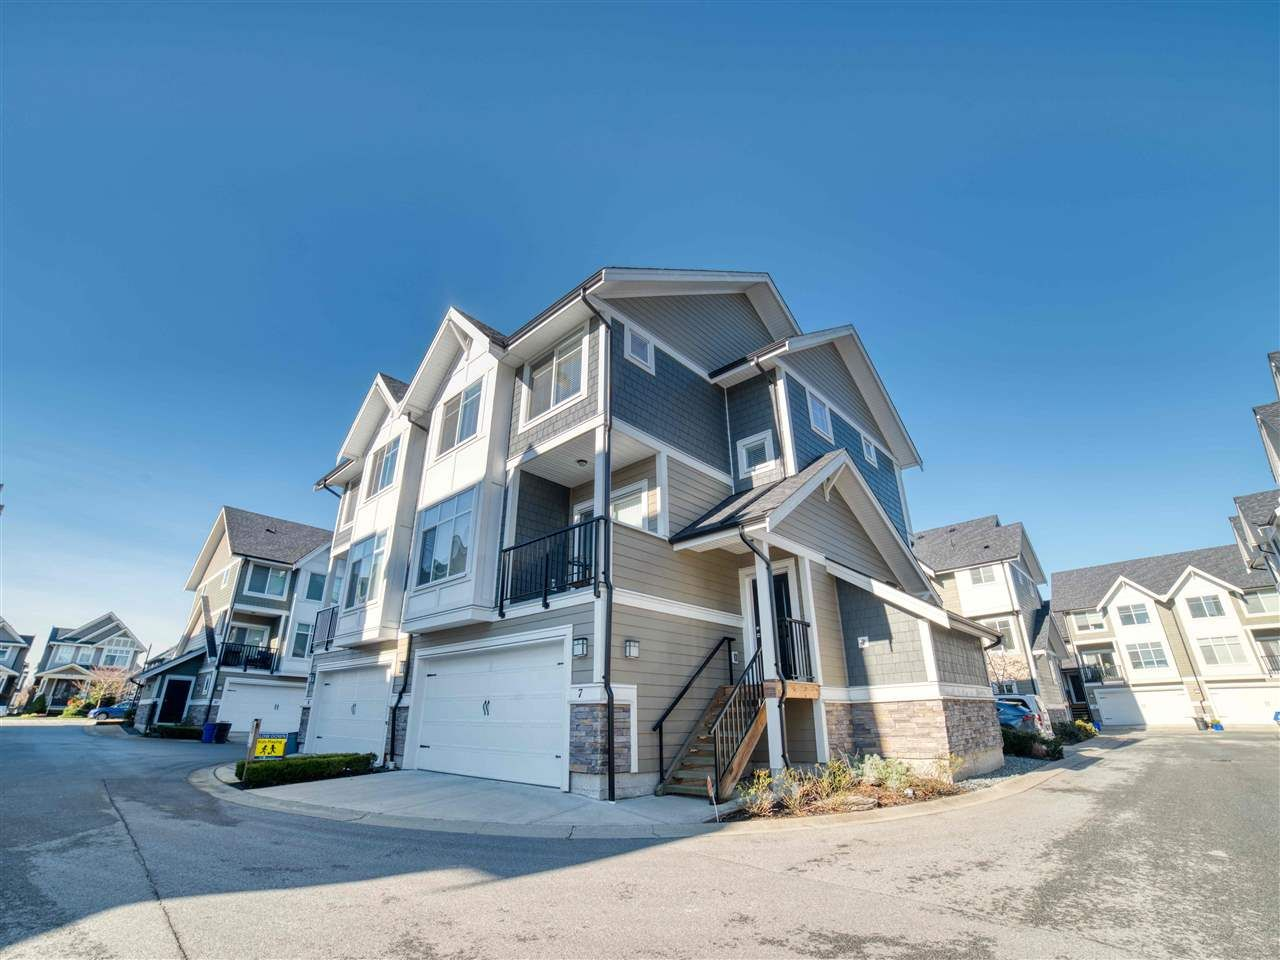 """Main Photo: 7 7374 194A Street in Surrey: Clayton Townhouse for sale in """"Asher"""" (Cloverdale)  : MLS®# R2536386"""